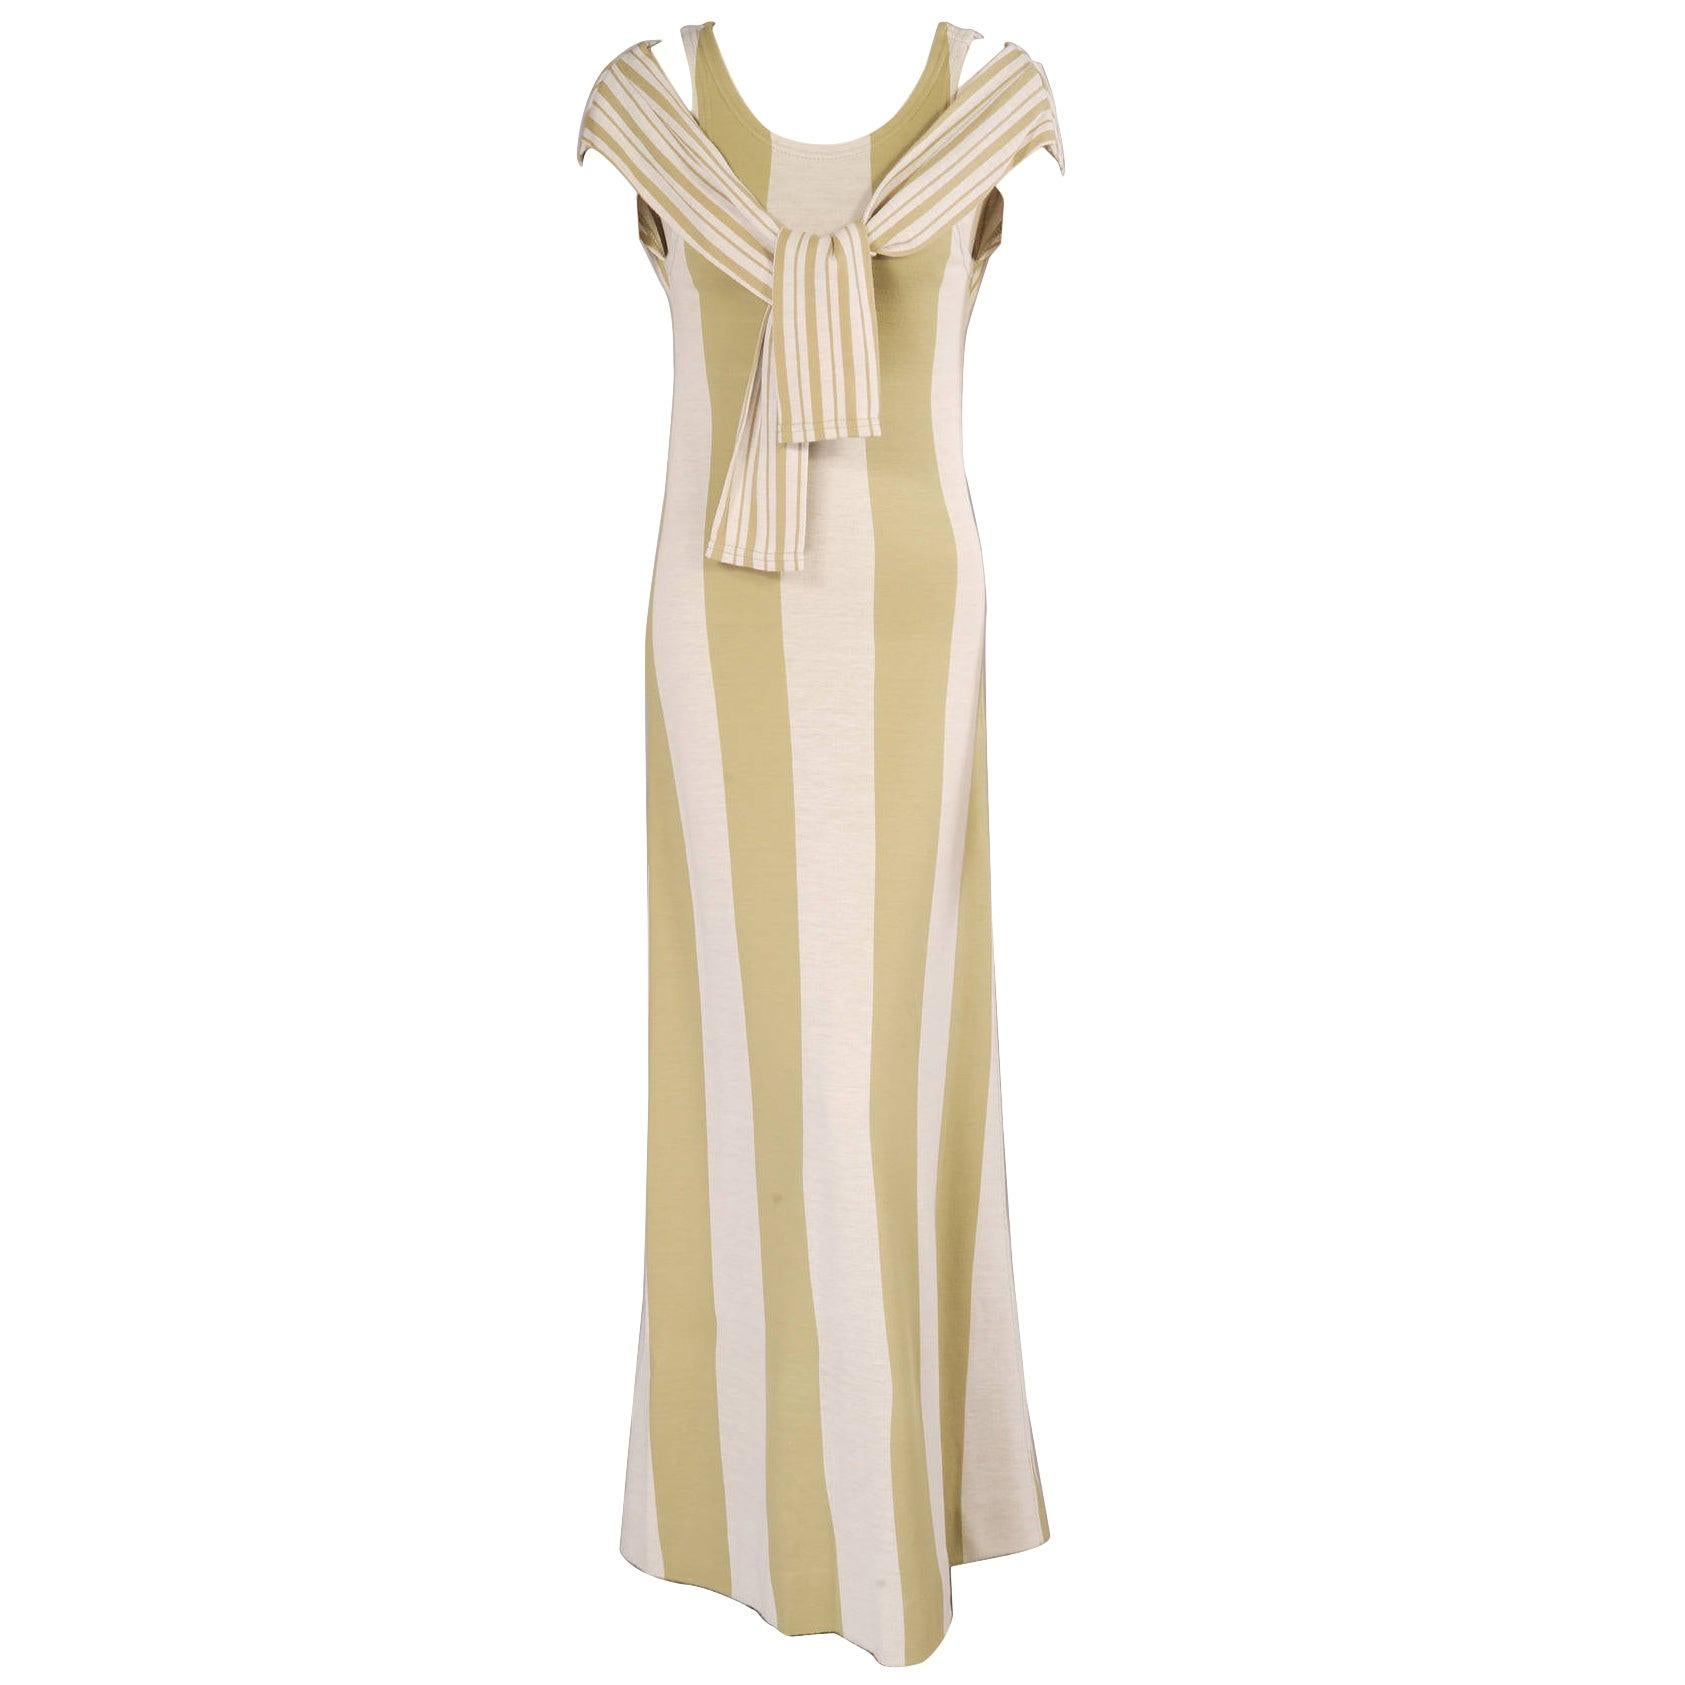 Rudi Gernreich for Harmon Knitwear Dress with Attached Trompe l' Oeil Sweater